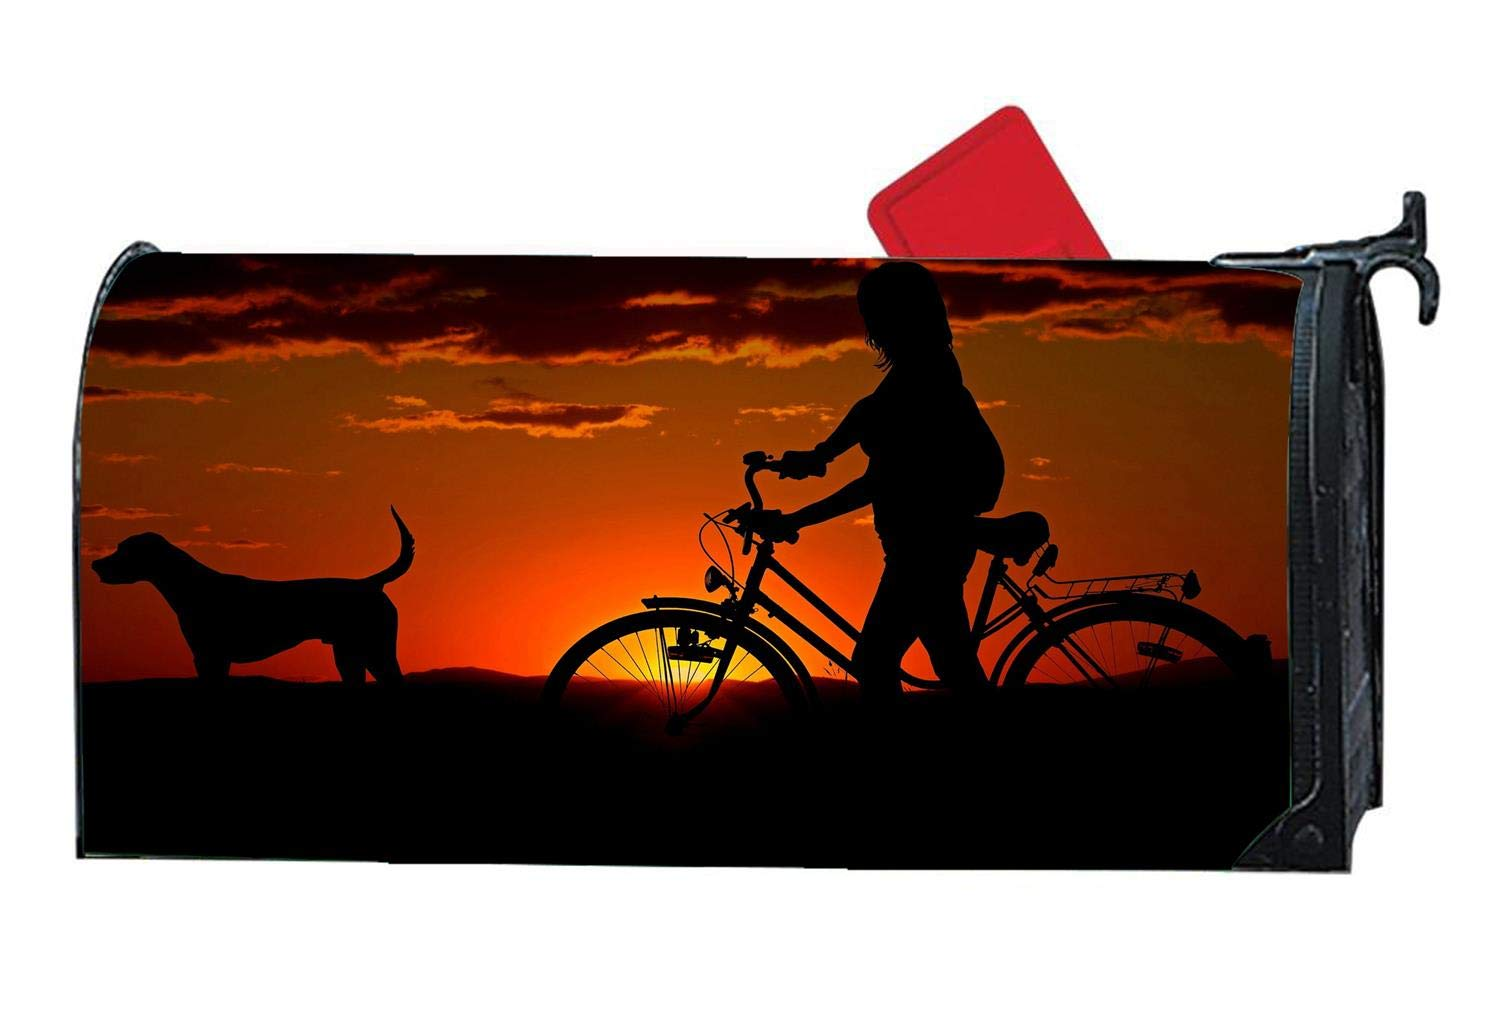 Woman Girl Bike Sunset Walk Custom Magnetic Mailbox Cover - Mail Wrap for Standard Mailboxes Size 6.5'' x 19''